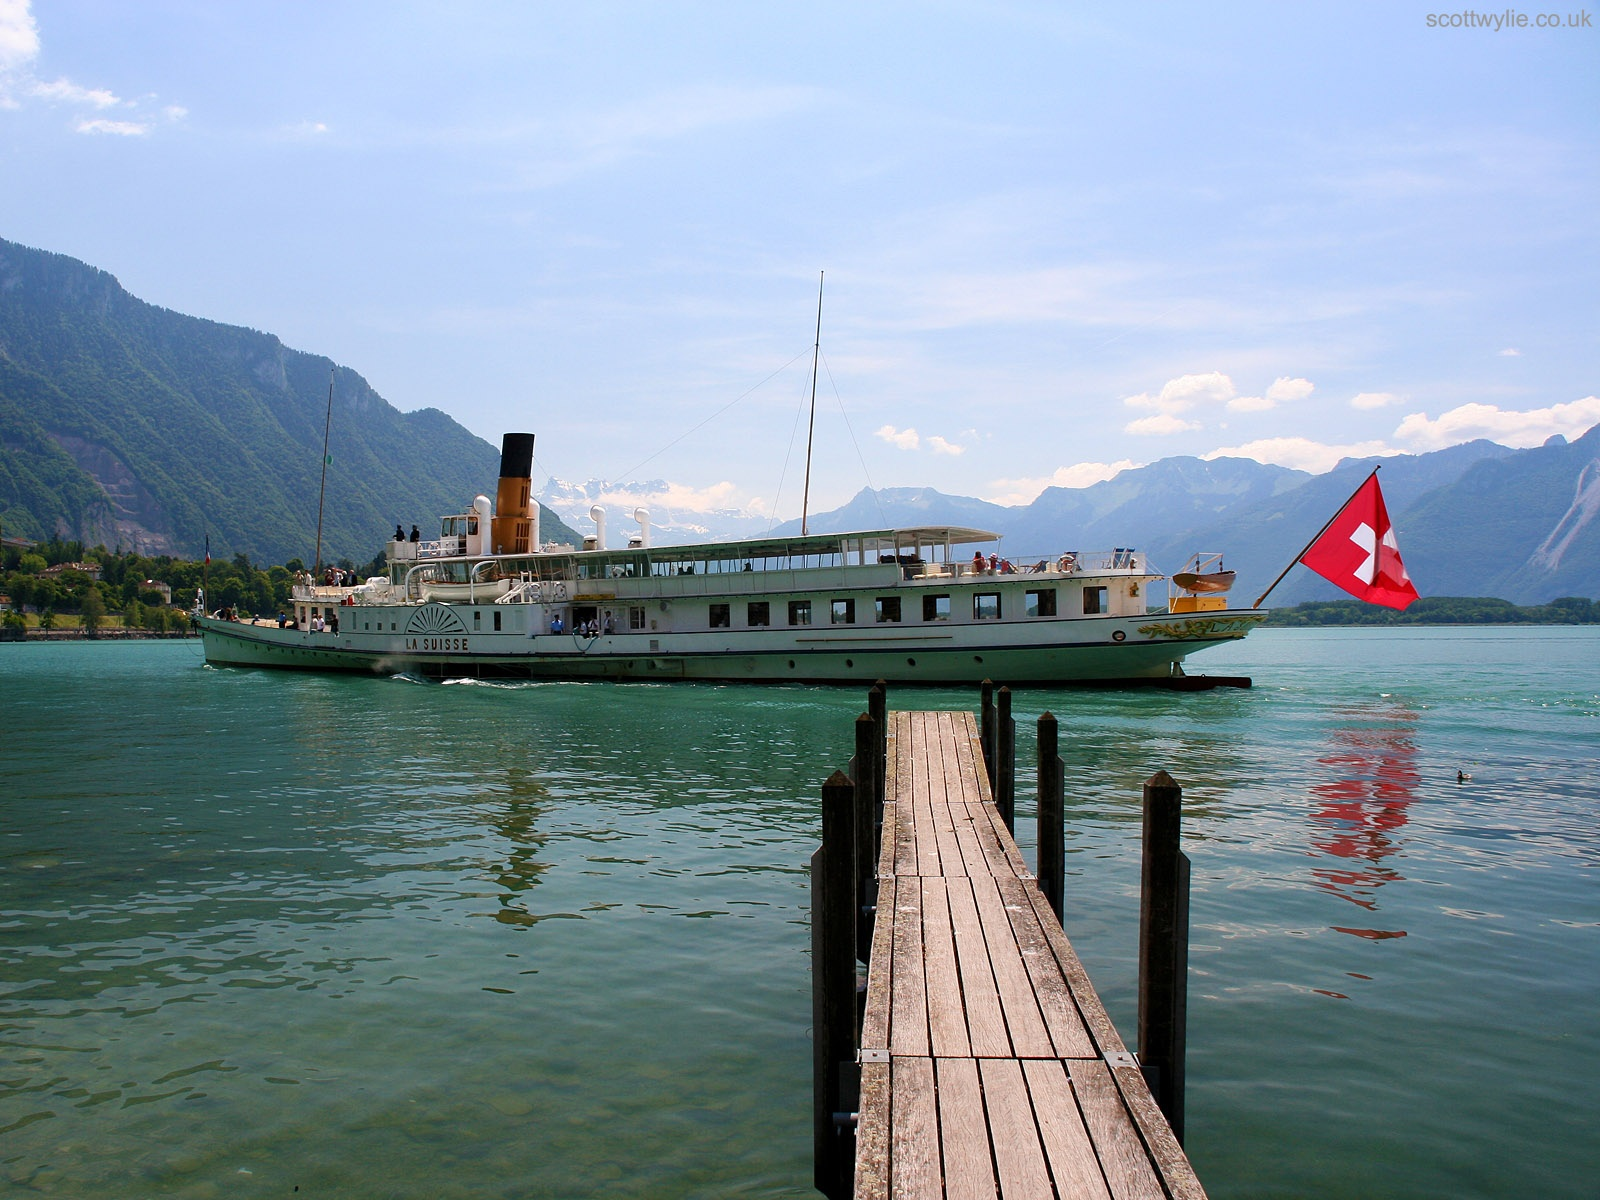 1600x1200 Paddle steamer on Lake Thun. desktop wallpapers and stock photos